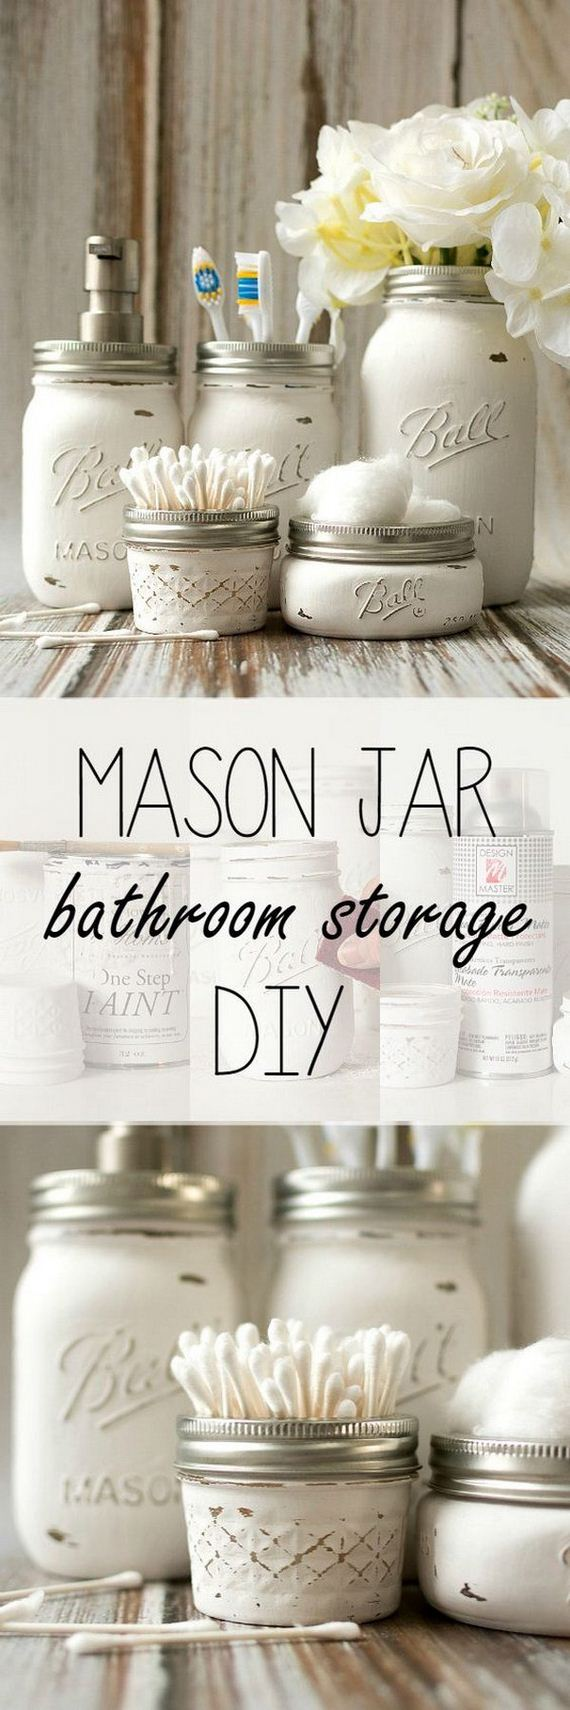 06-romantic-shabby-chic-diy